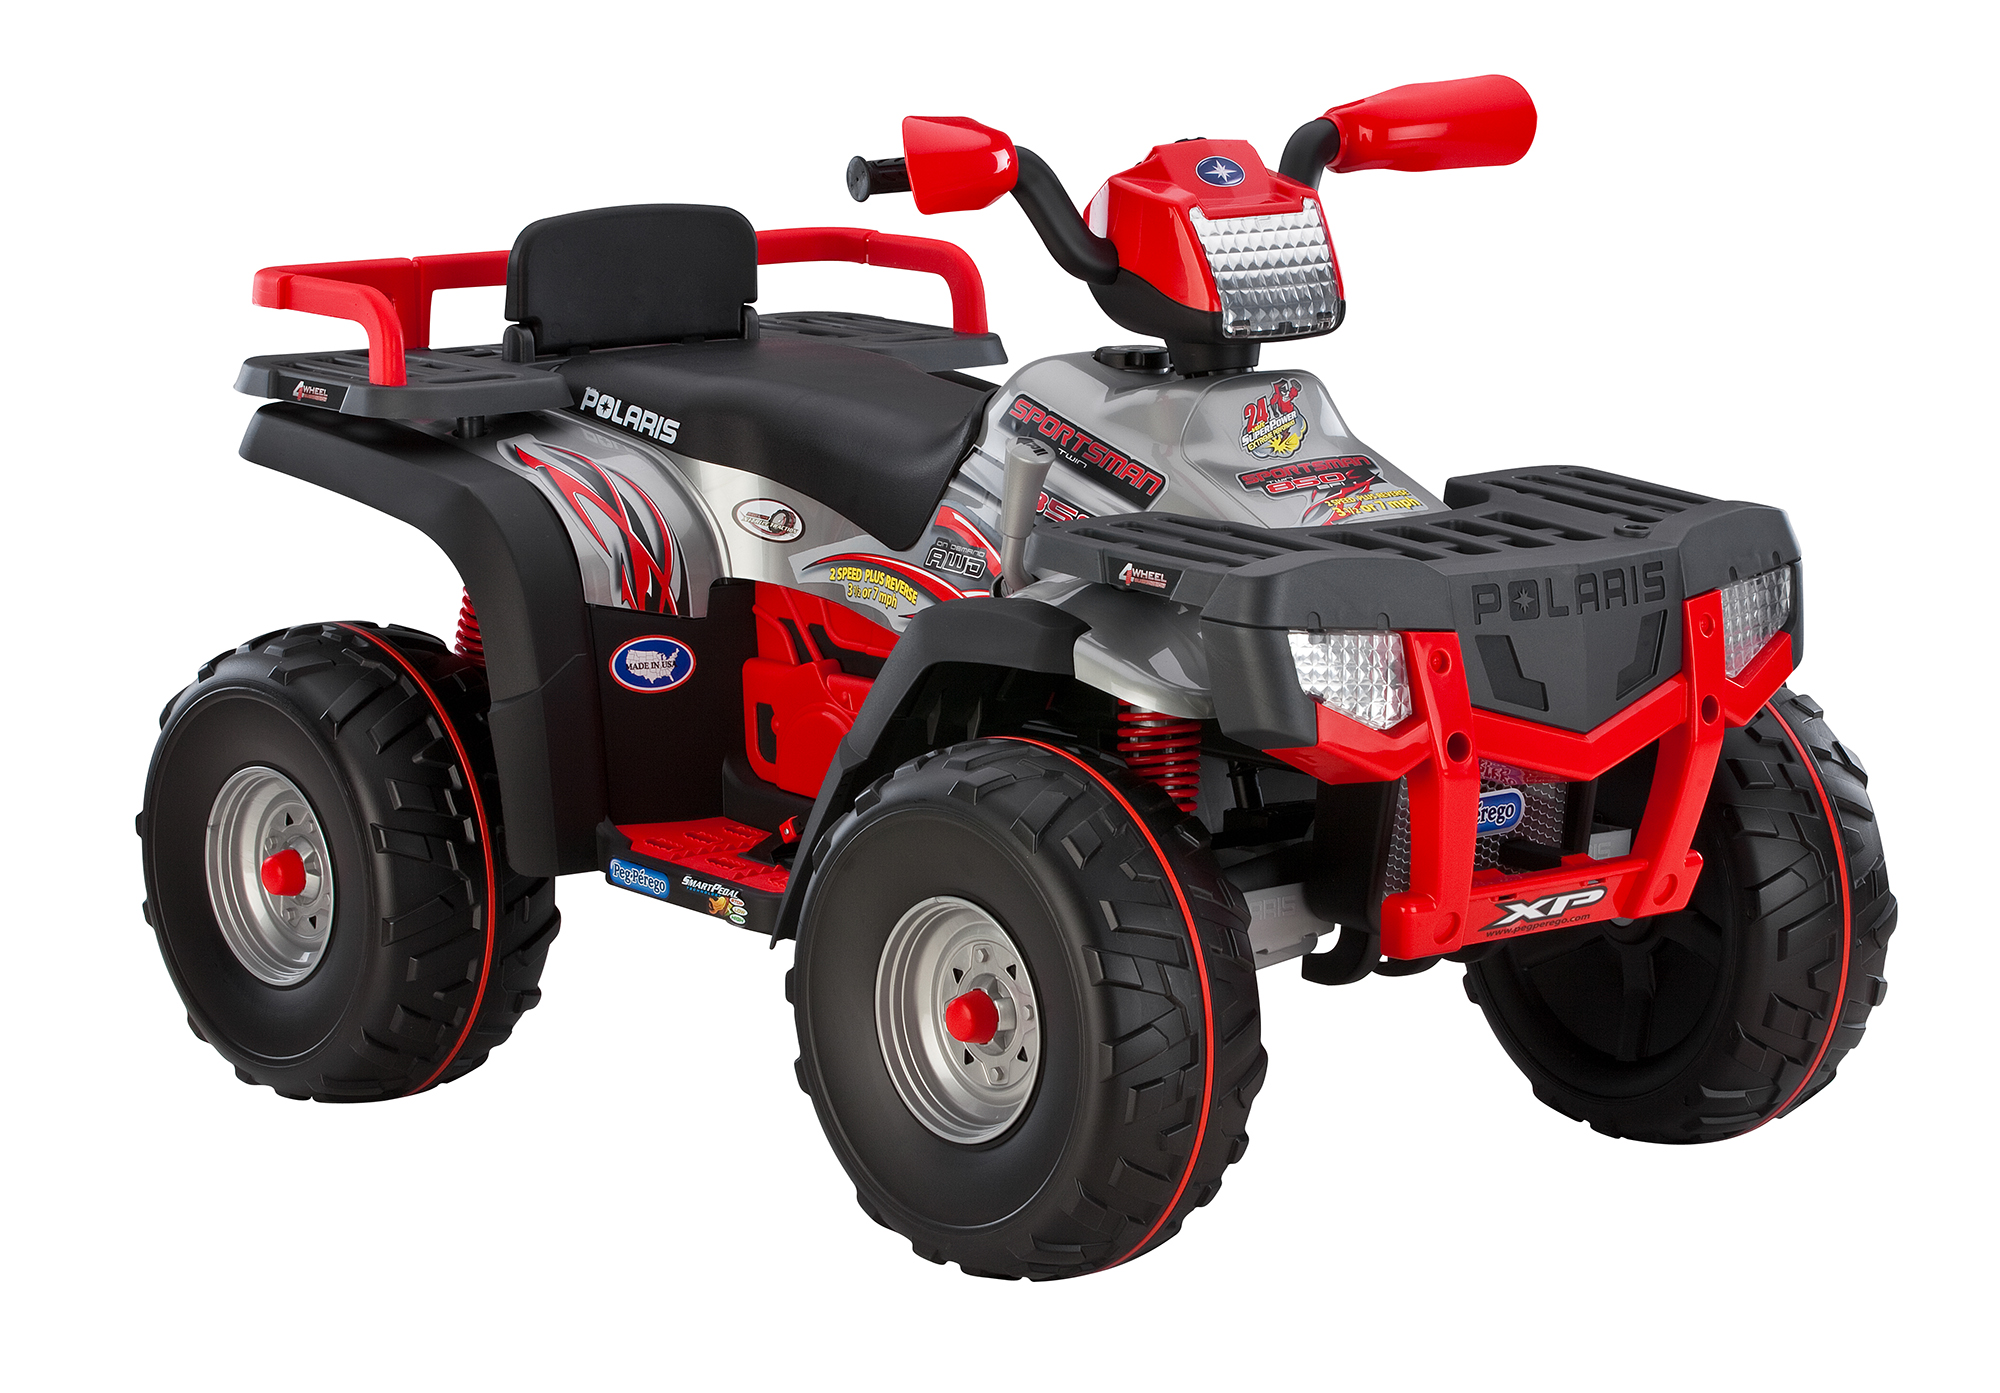 Peg Perego Recalls Children's Ride-On Vehicles Due to Fire and Burn Hazards (Recall Alert)